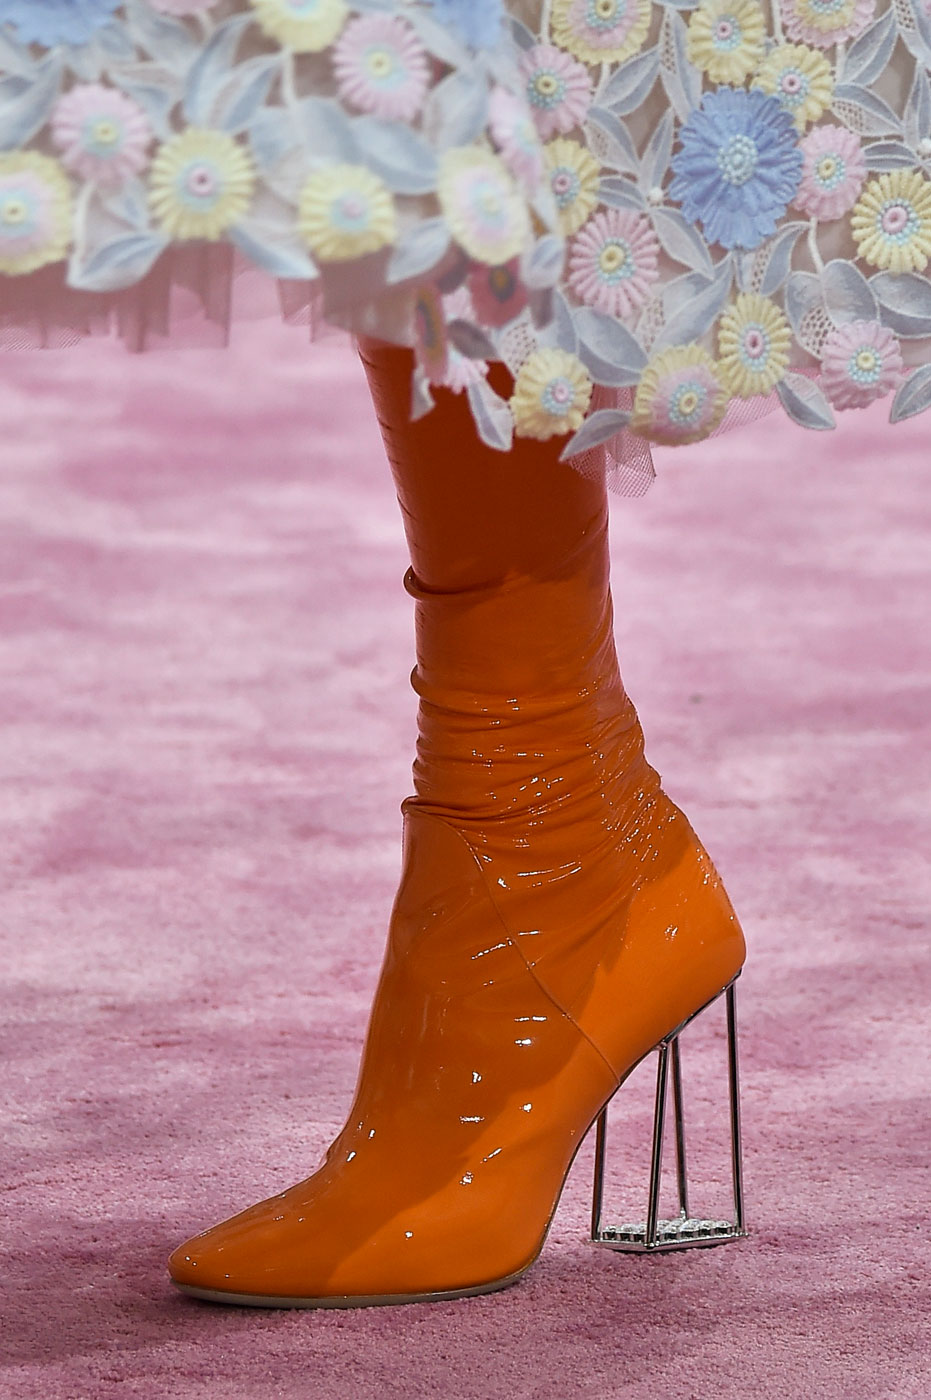 Christian-Dior-fashion-runway-show-close-ups-haute-couture-paris-spring-summer-2015-the-impression-162